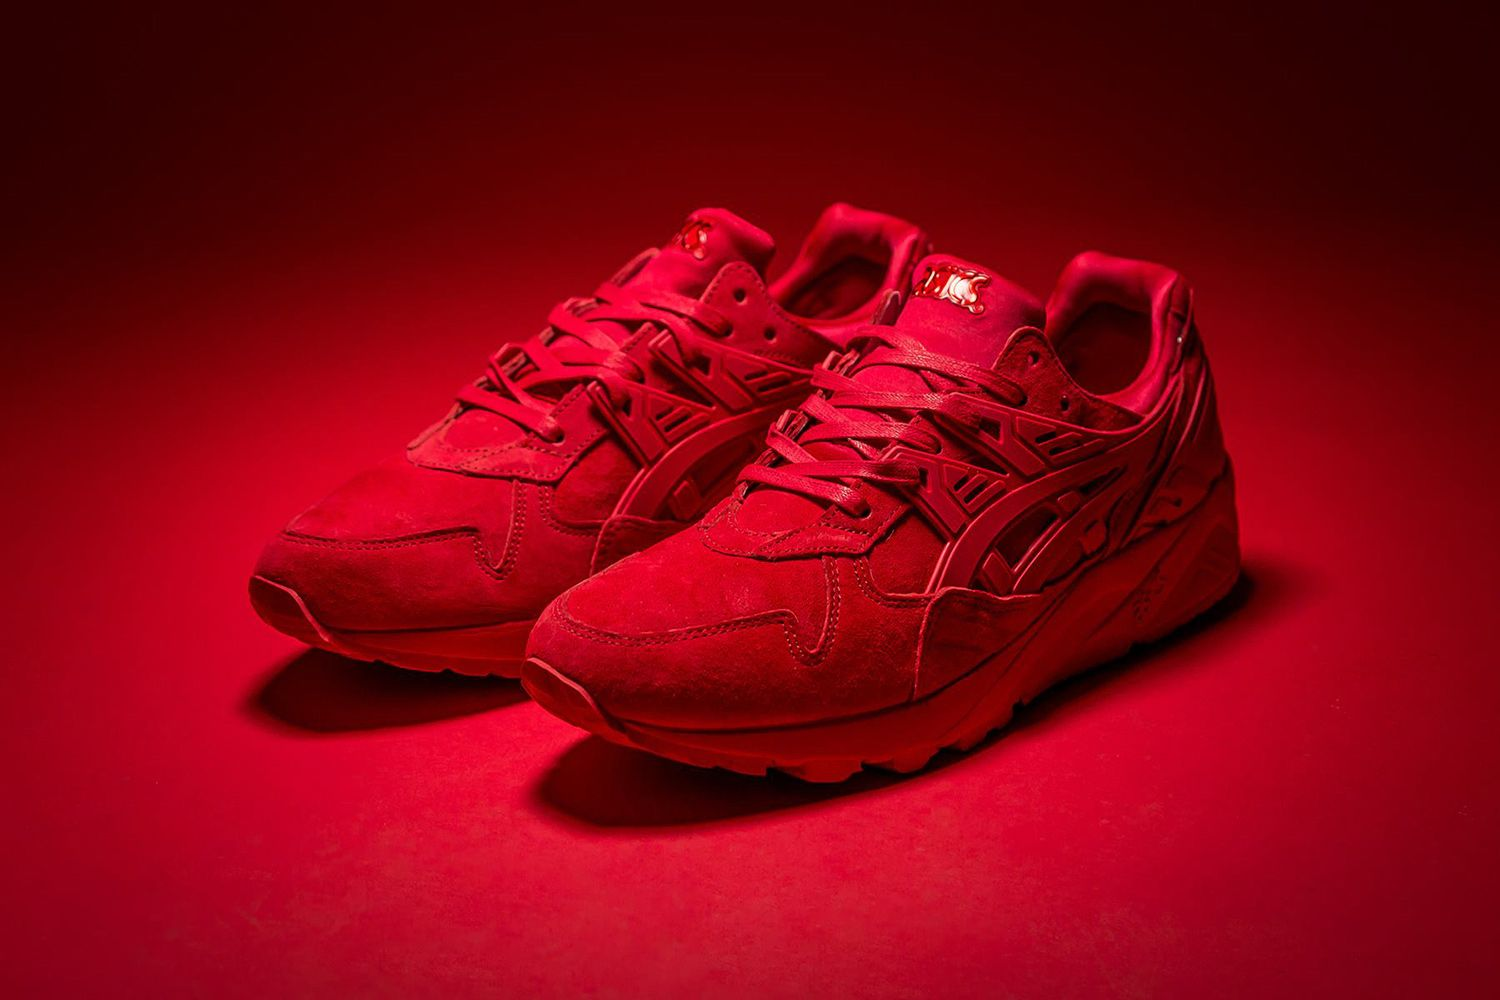 6b132059934a Packer Shoes Drapes the ASICS GEL-Kayano in